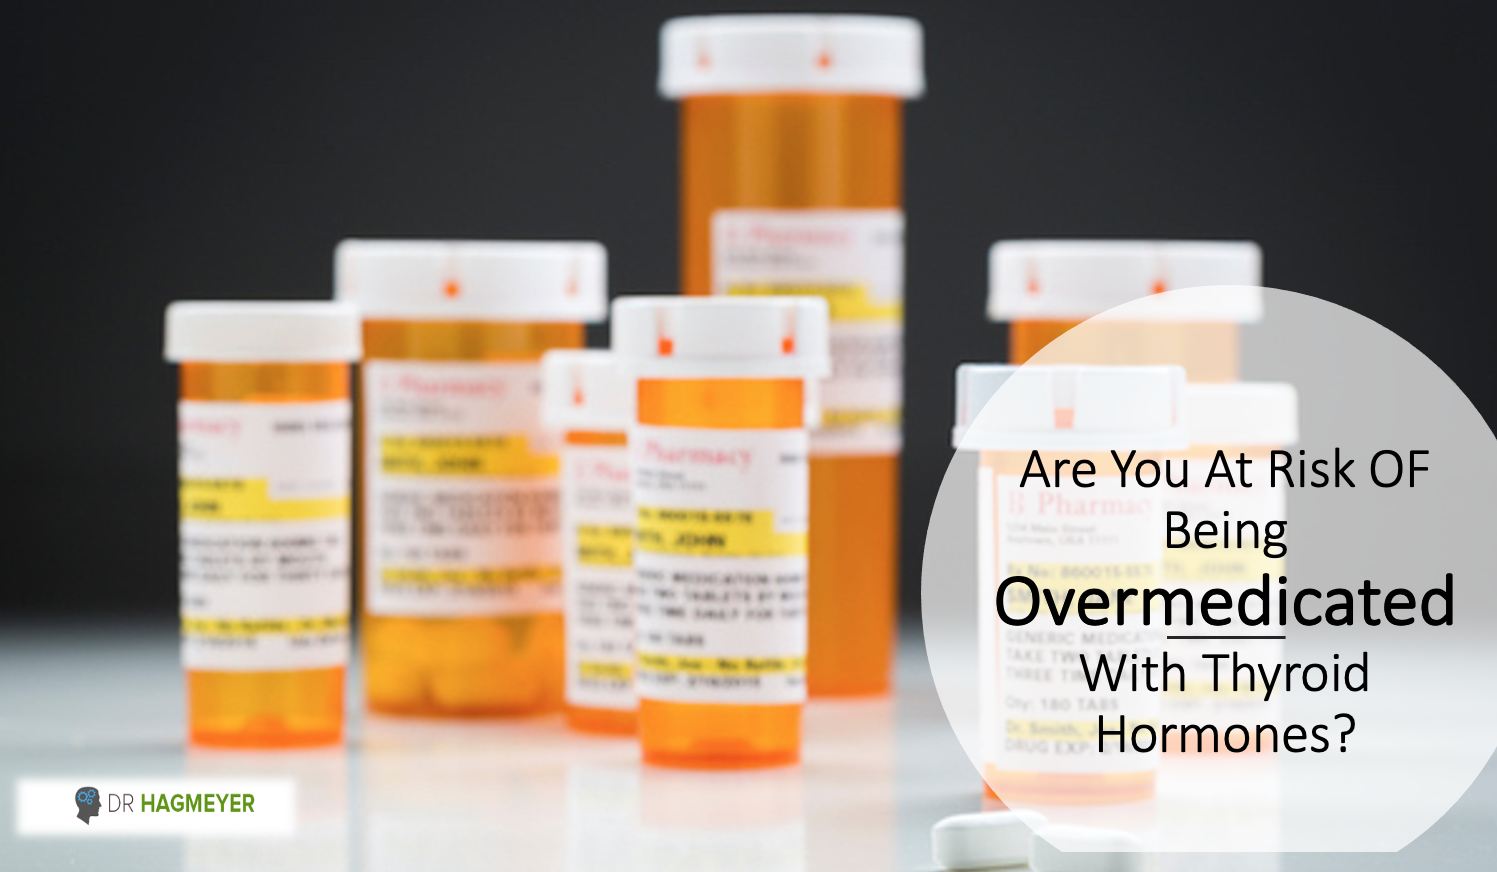 Are you Being Thyroid OverMedicated- Who's At The Most Risk